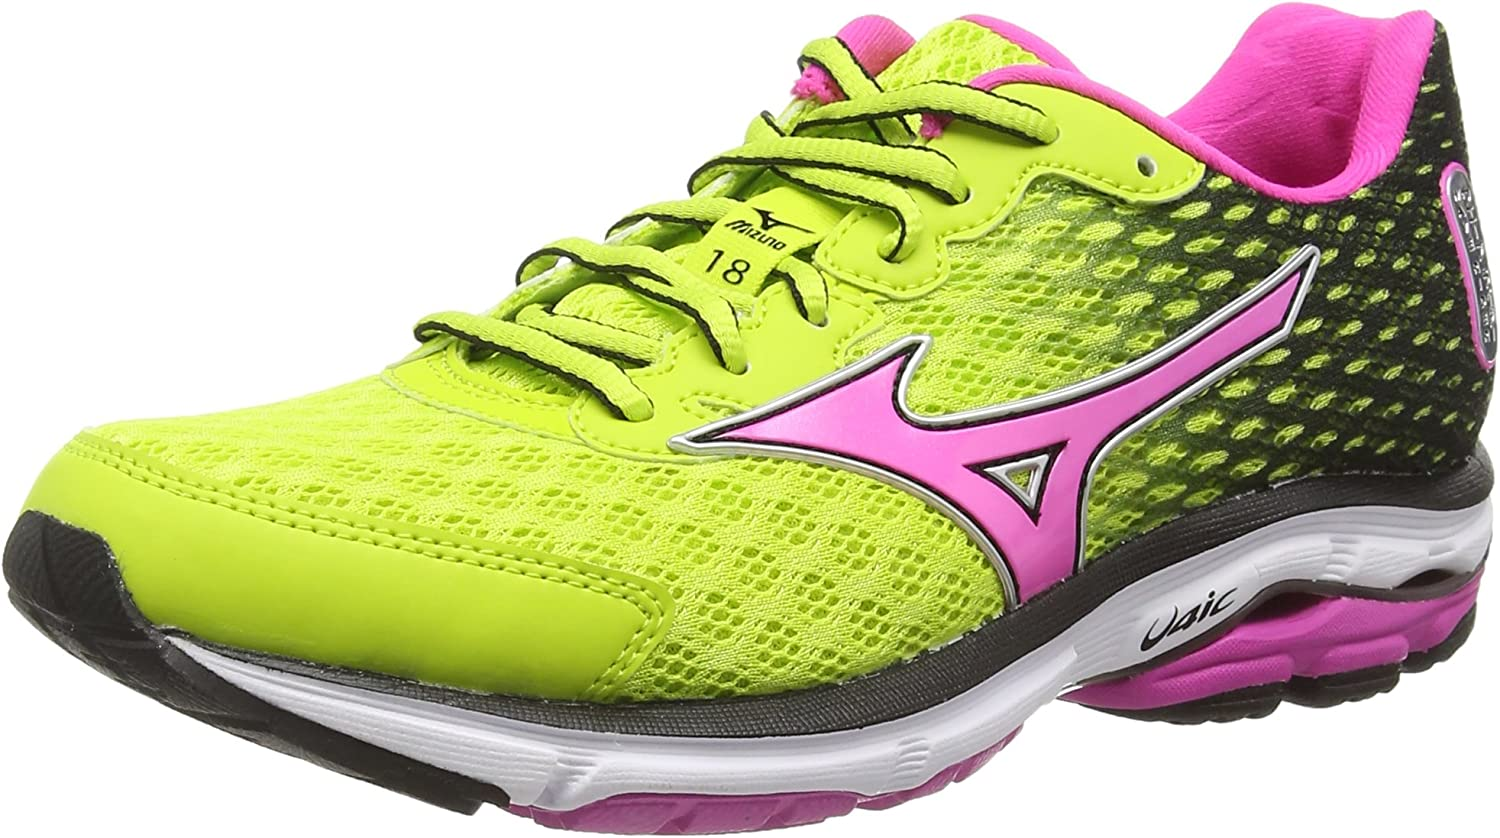 Mizuno Wave Rider 18 (W) - Zapatillas running para mujer, Mehrfarbig (lime Punch/electric), 43 EU (9 UK): Amazon.es: Zapatos y complementos